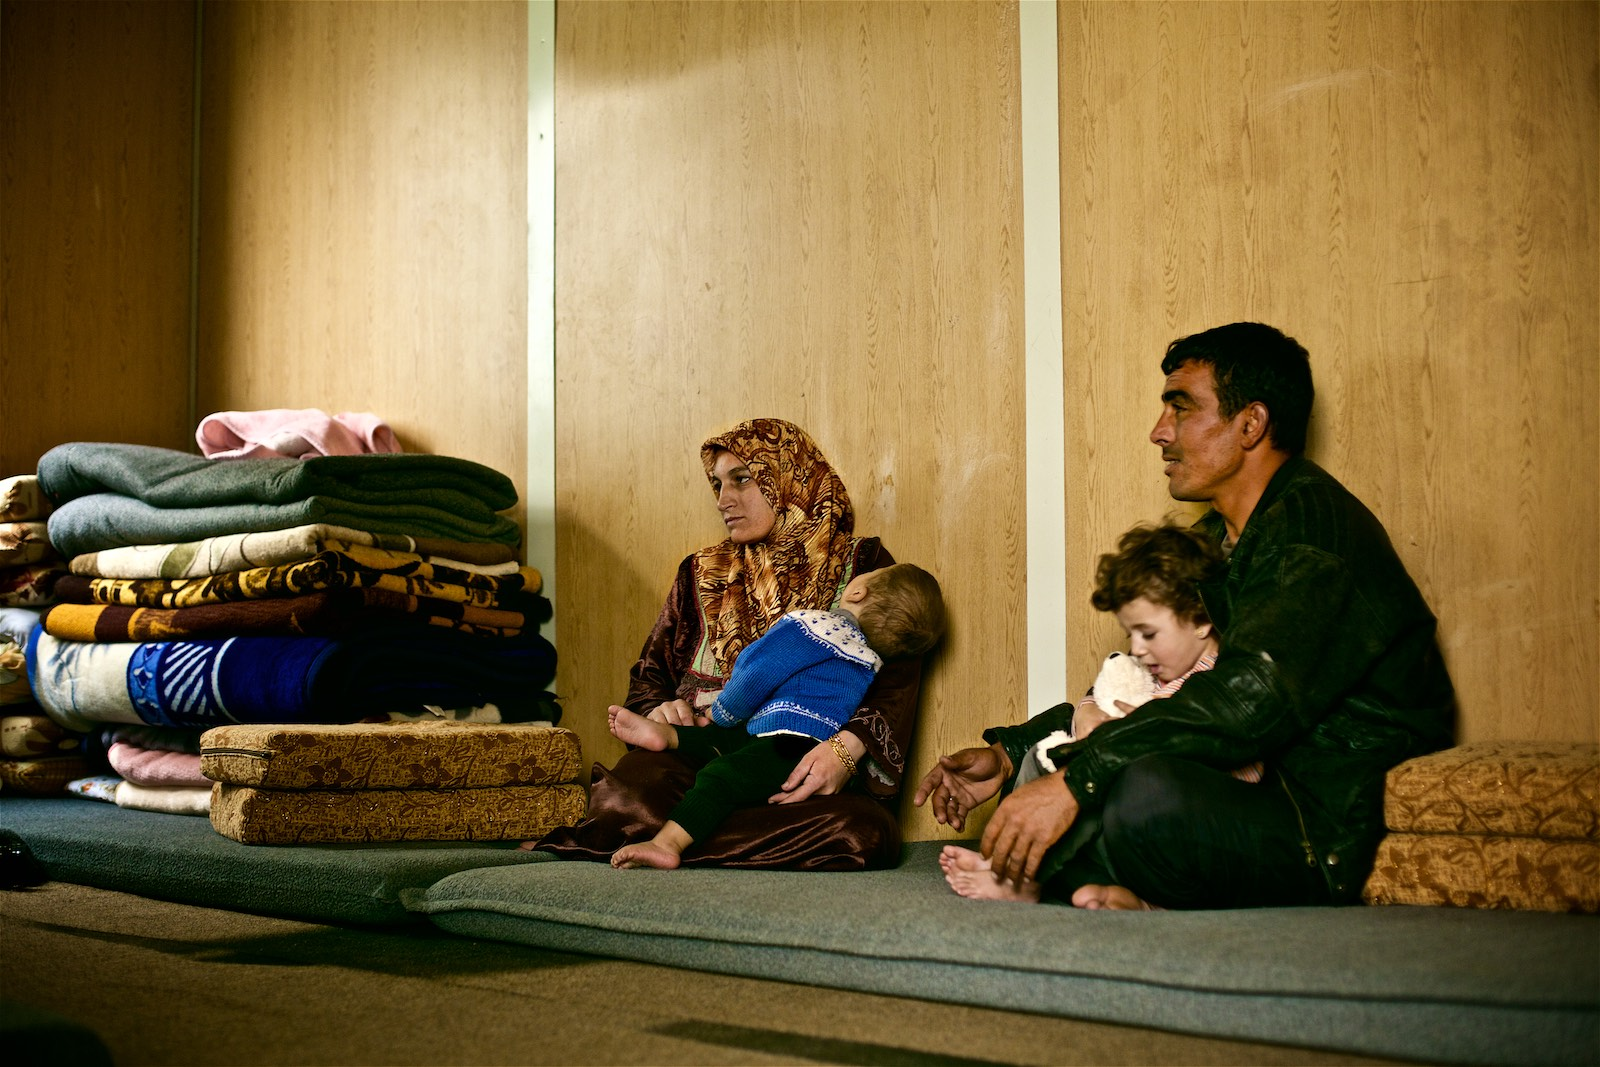 Abdullah and Shayma have been in the camp for three years now. (photo: Denis Bosnic)